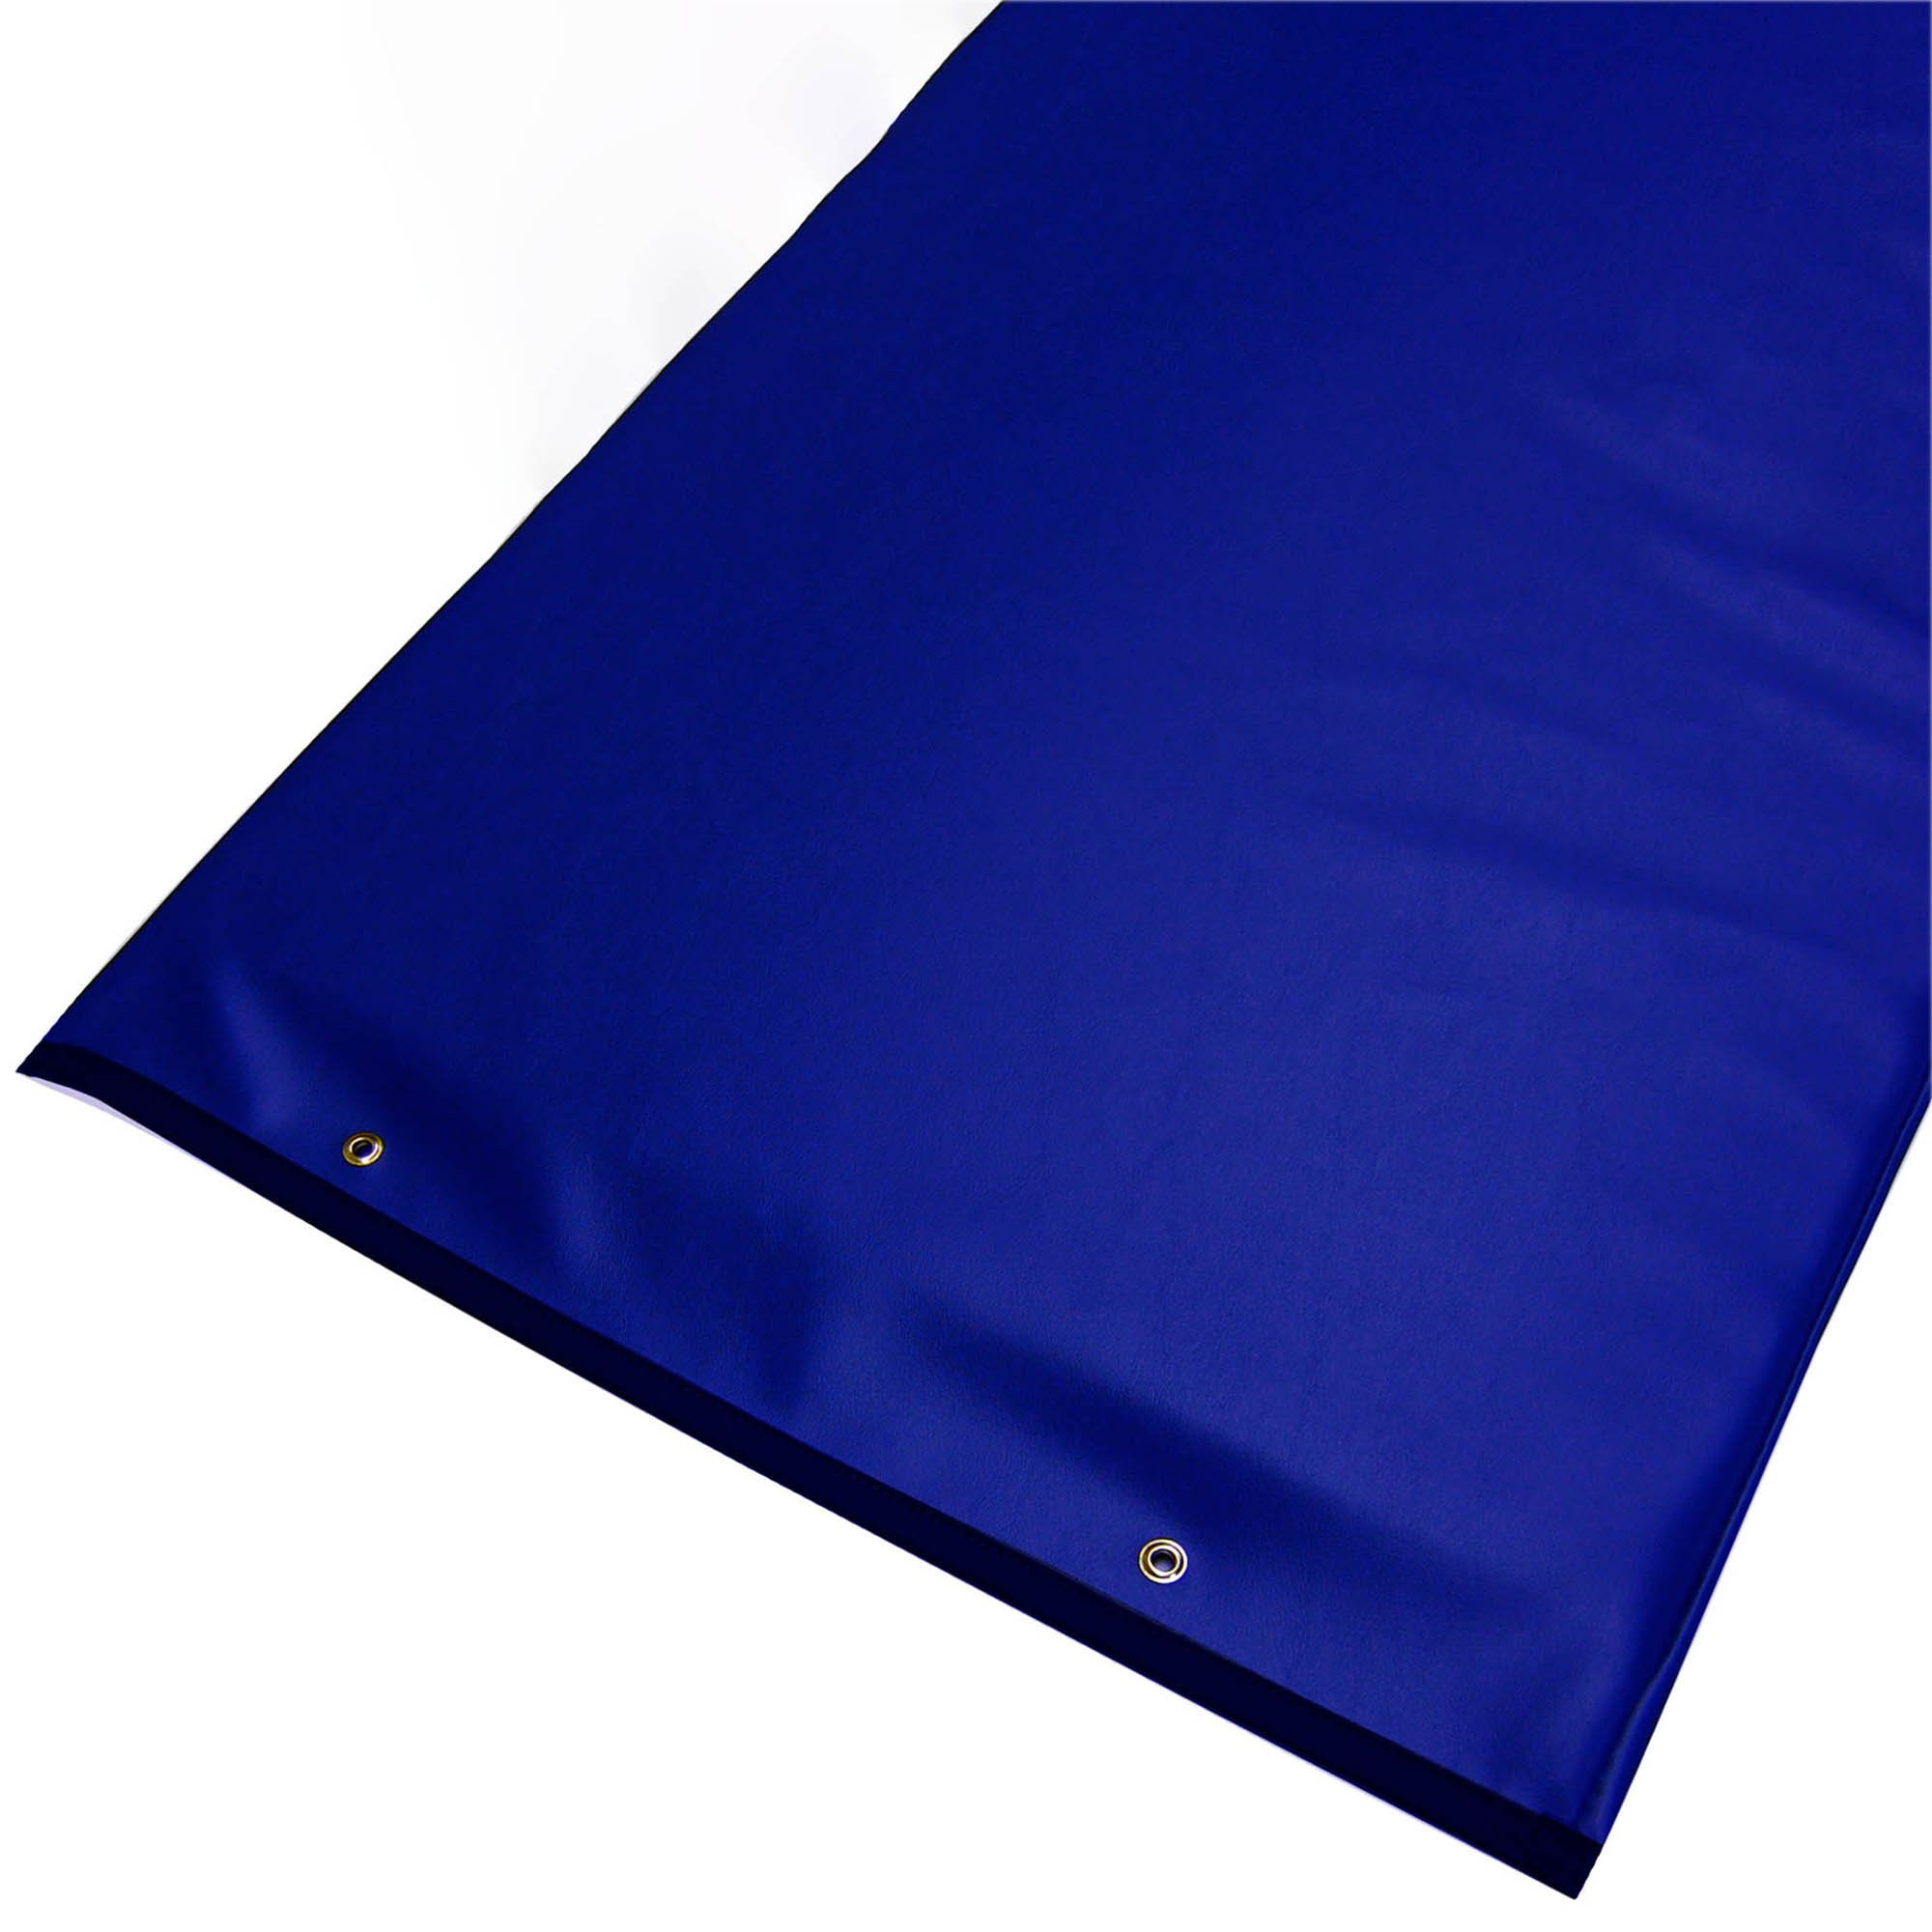 Standard Plus Radiolucent X-Ray Comfort Foam Table Pad - Blue Vinyl, With Grommets 80